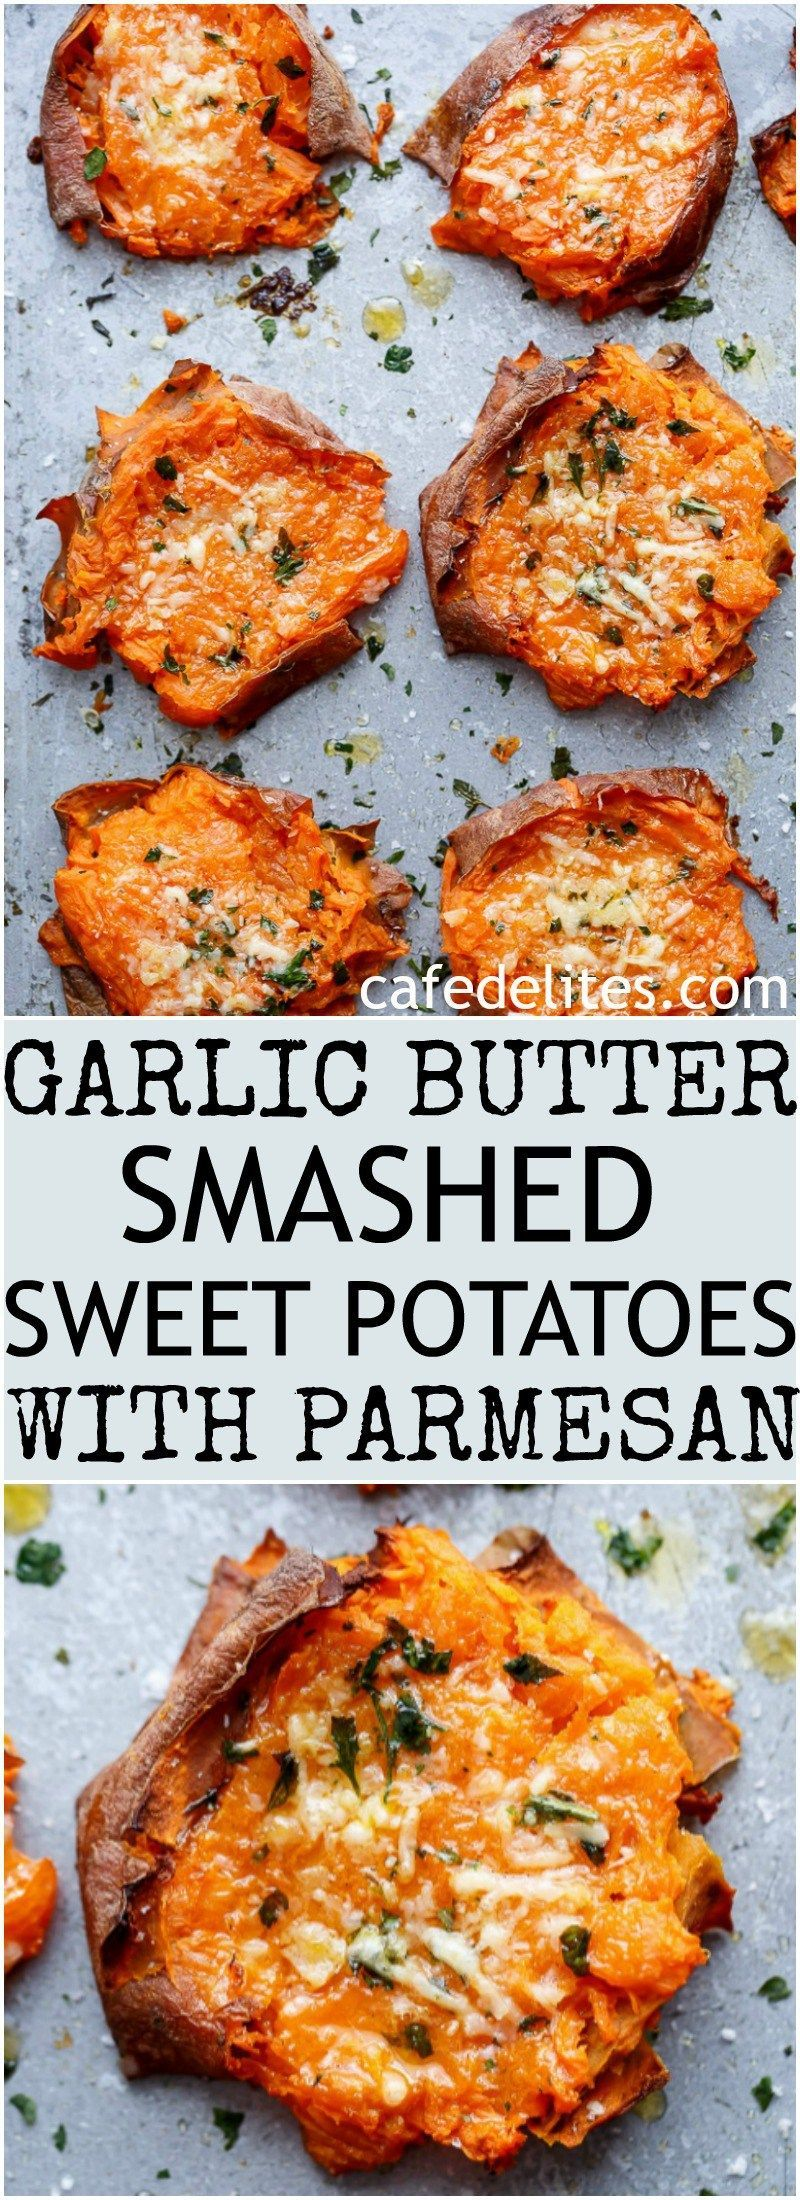 Garlic Butter Smashed Sweet Potatoes With Parmesan Cheese -